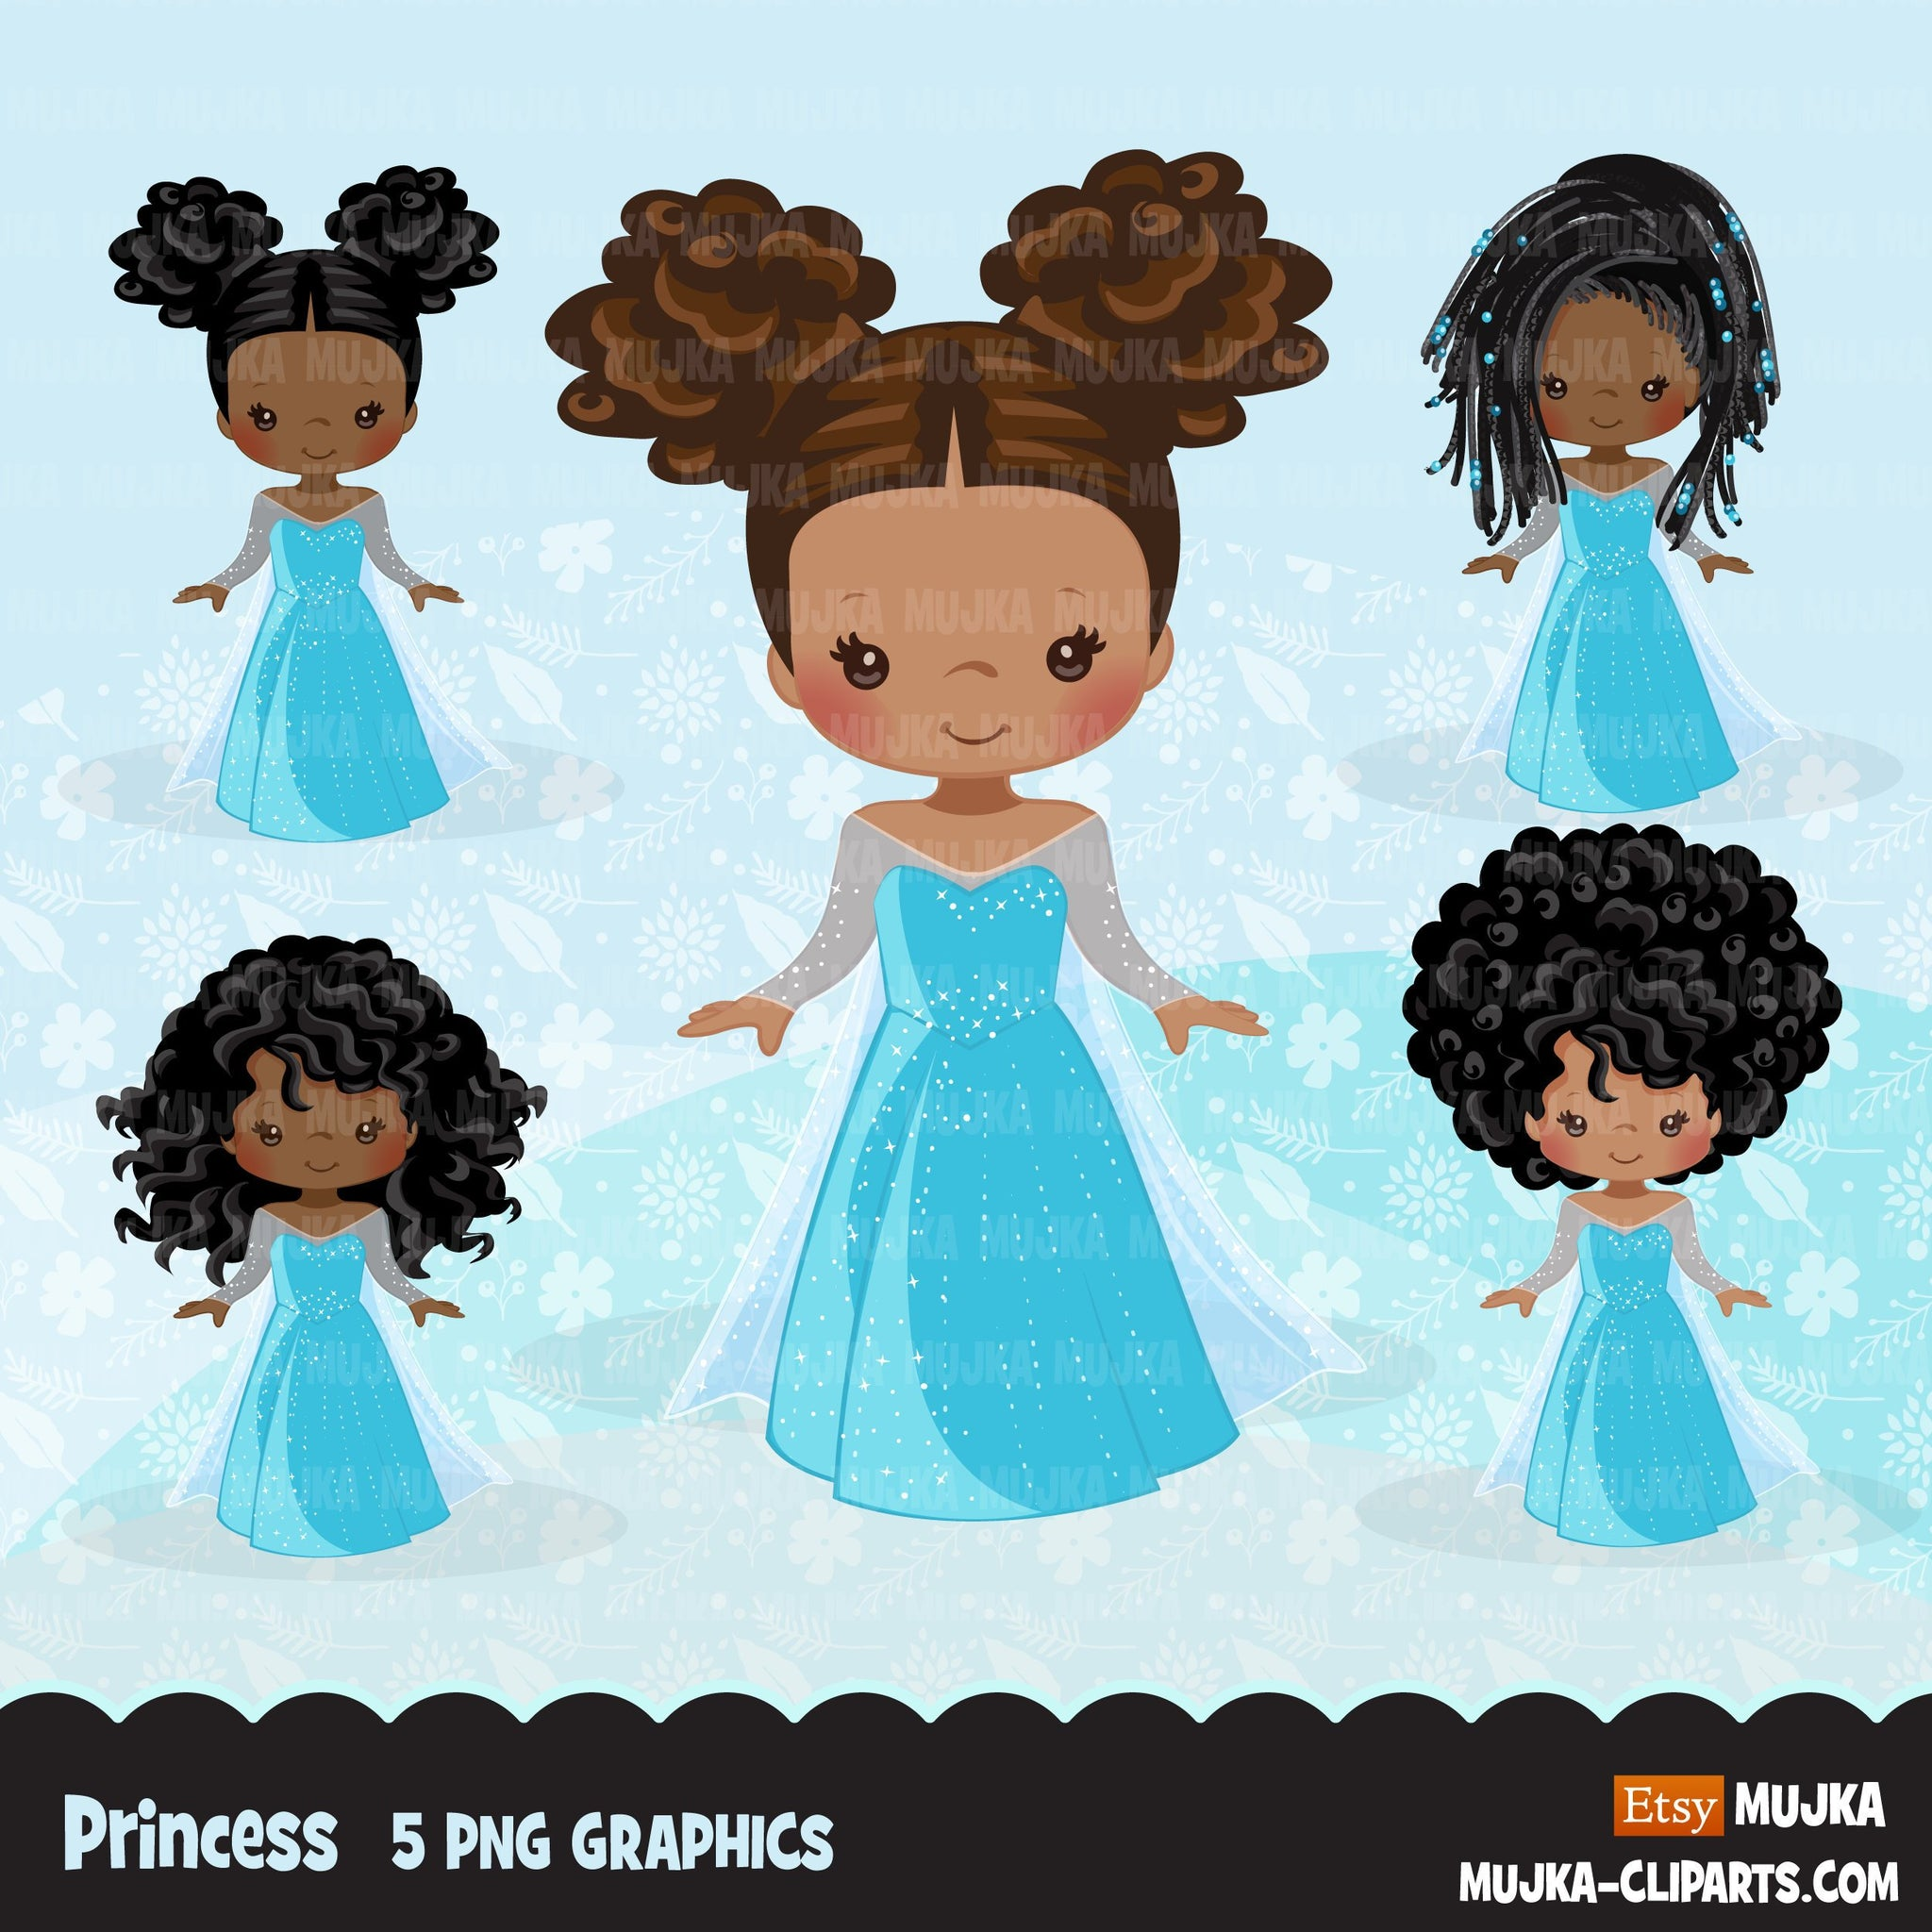 Black Princess clipart, fairy tale graphics, girls story book, light blue princess dress, commercial use clip art